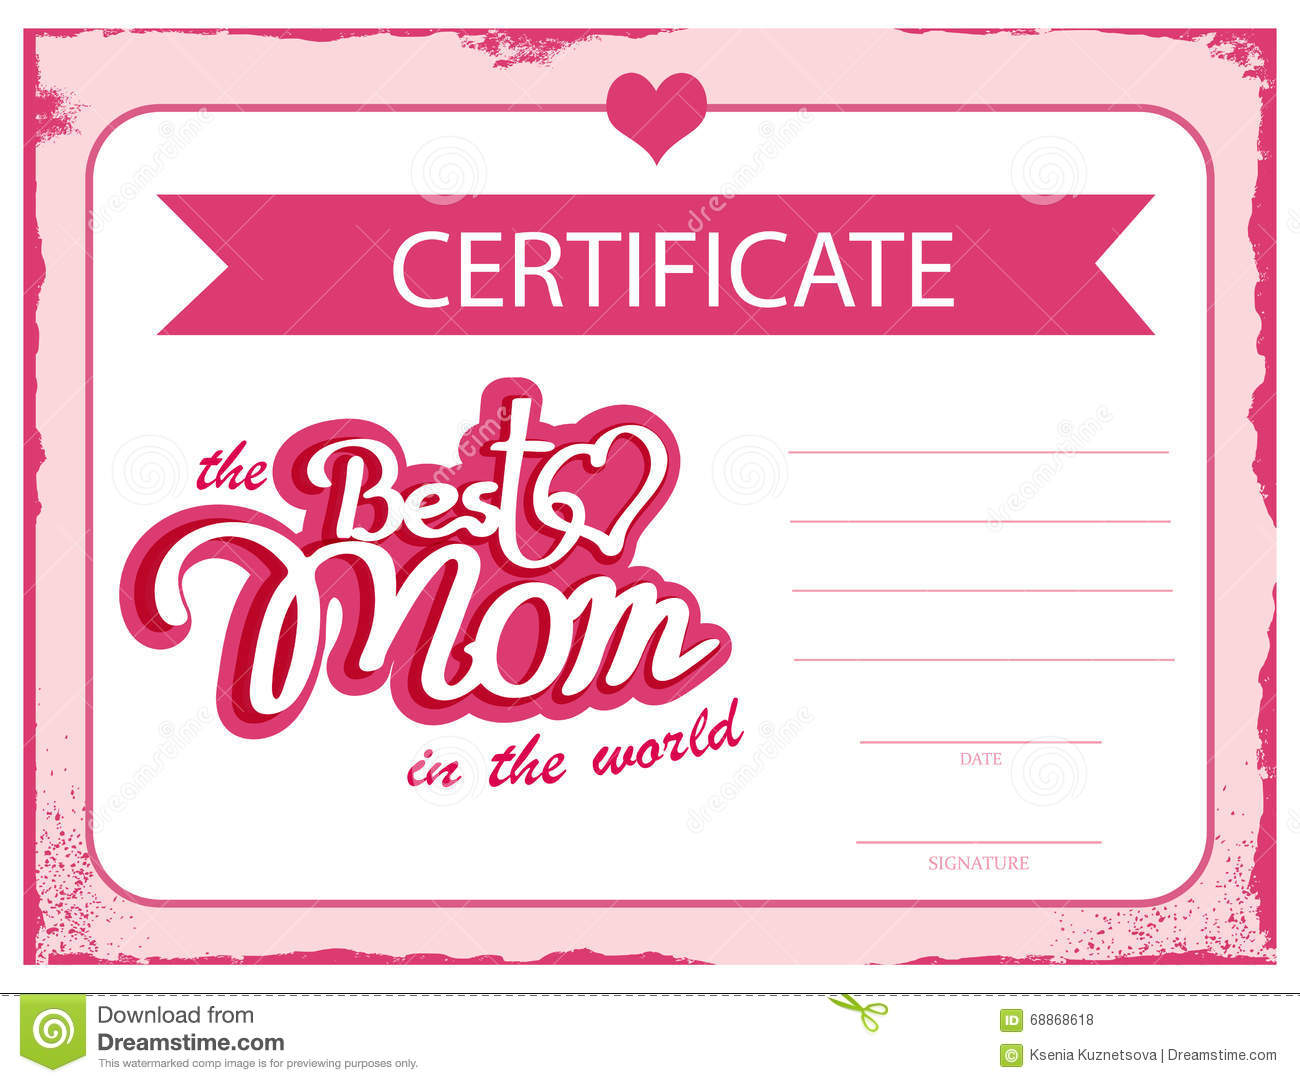 Template vector certificate best mom in the world a gift template vector certificate best mom in the world a gift certificate for mothers day a diploma template royalty free vector alramifo Choice Image